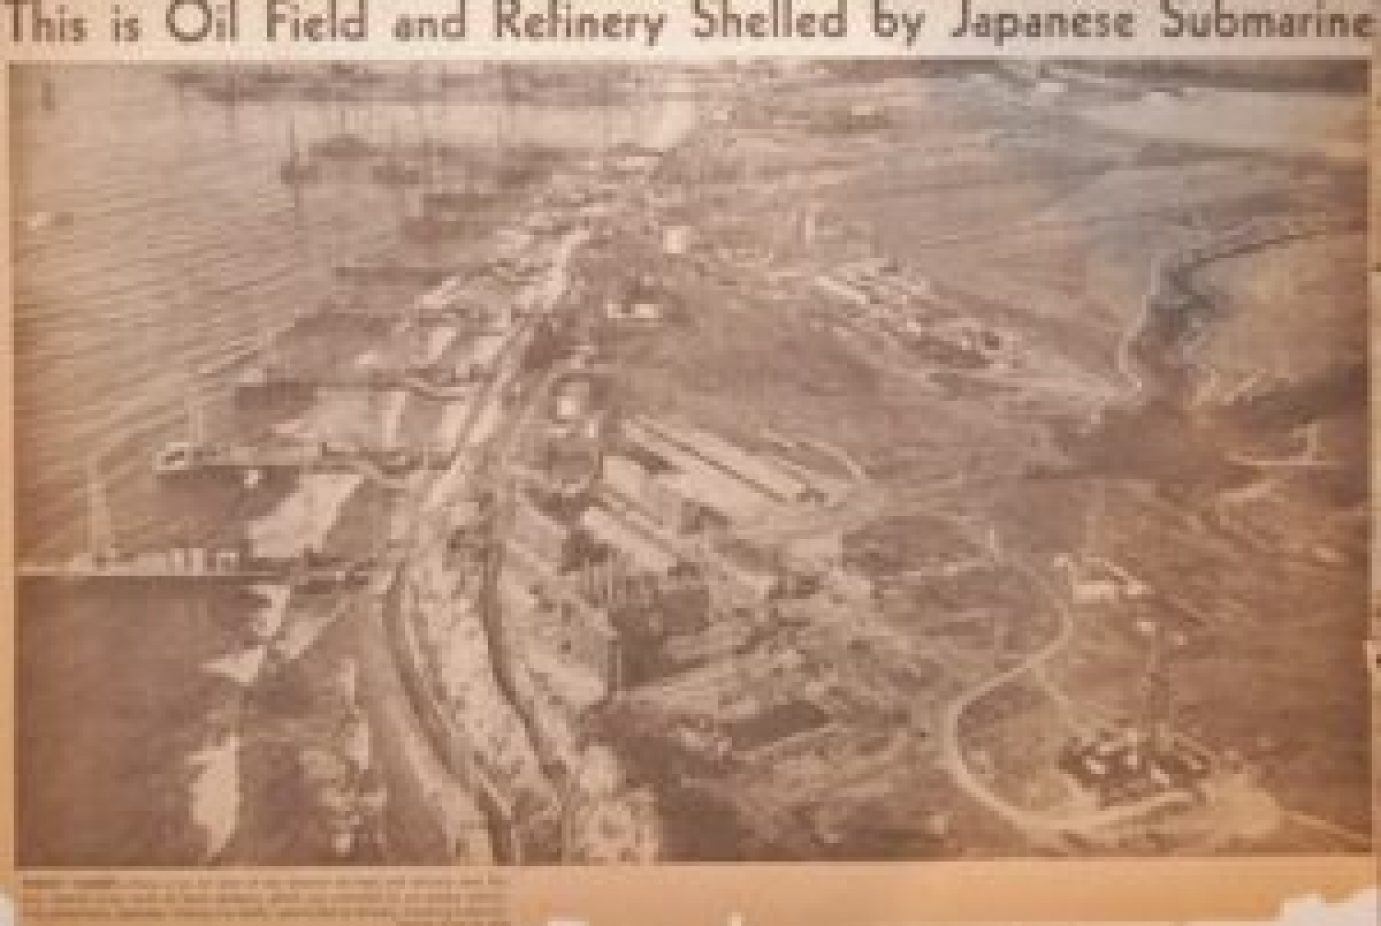 Oil refinery shelled by japenese